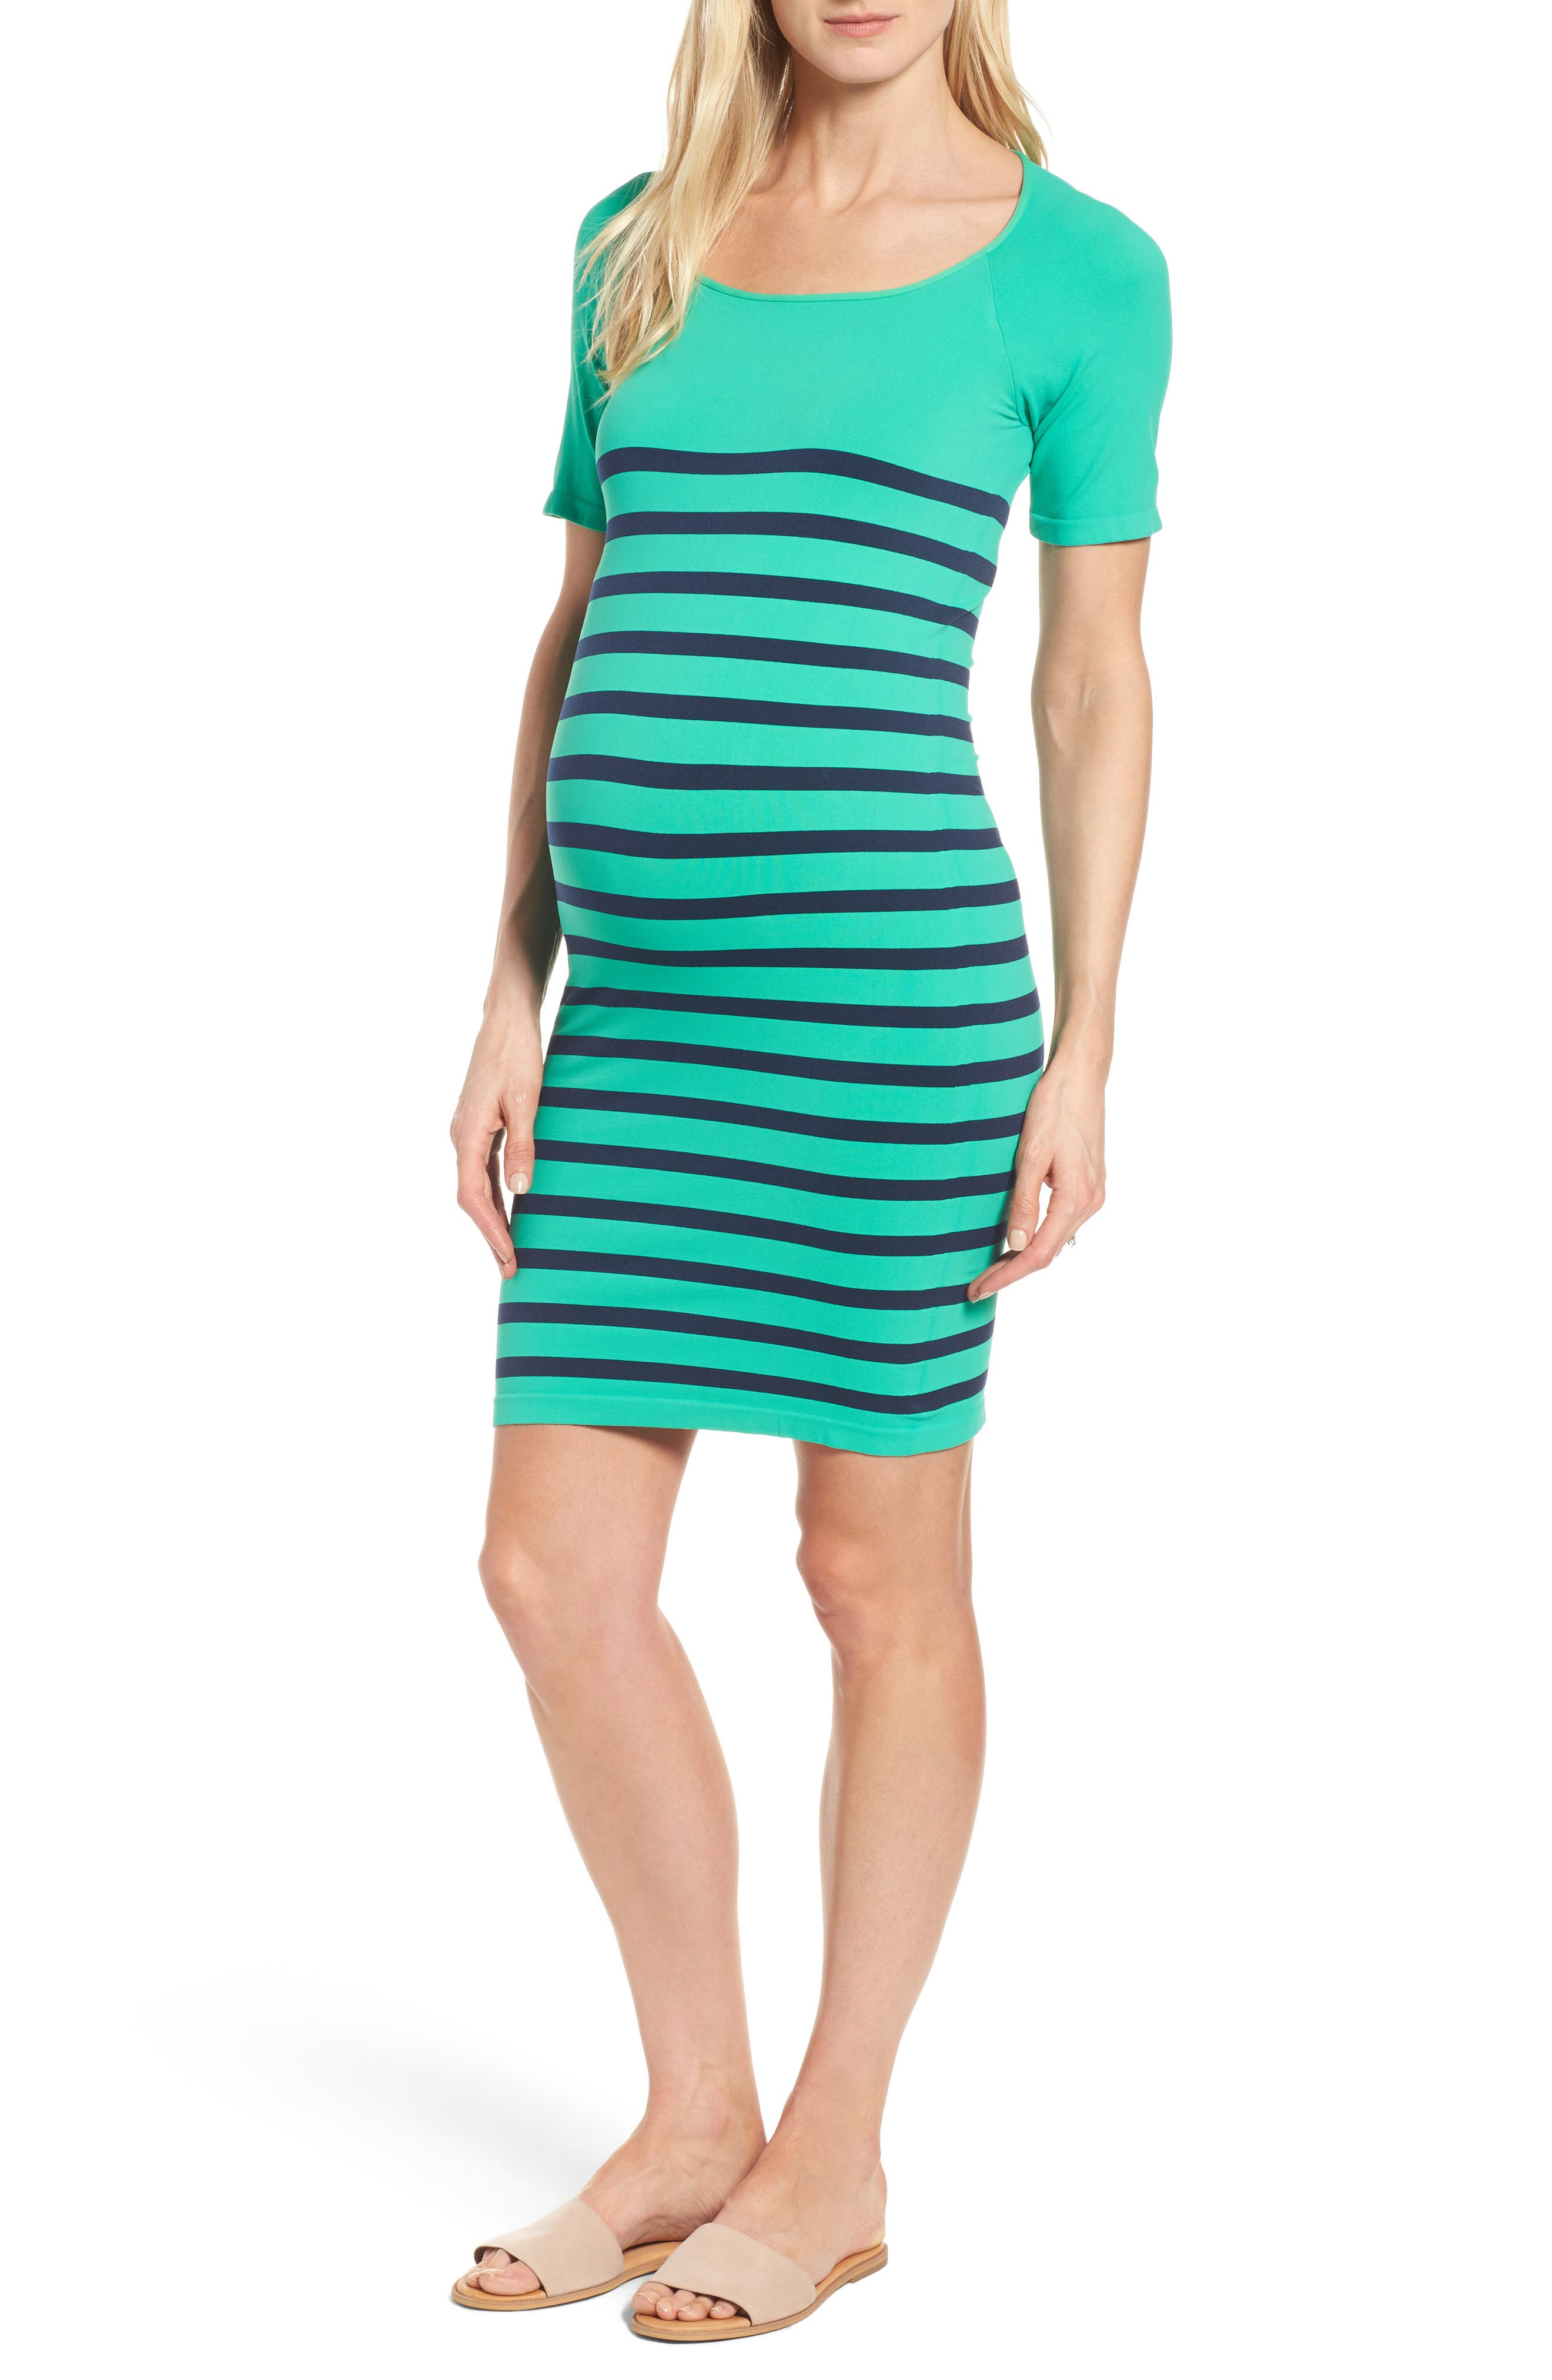 Tees by Tina 'Nautical' Short Sleeve Maternity Dress